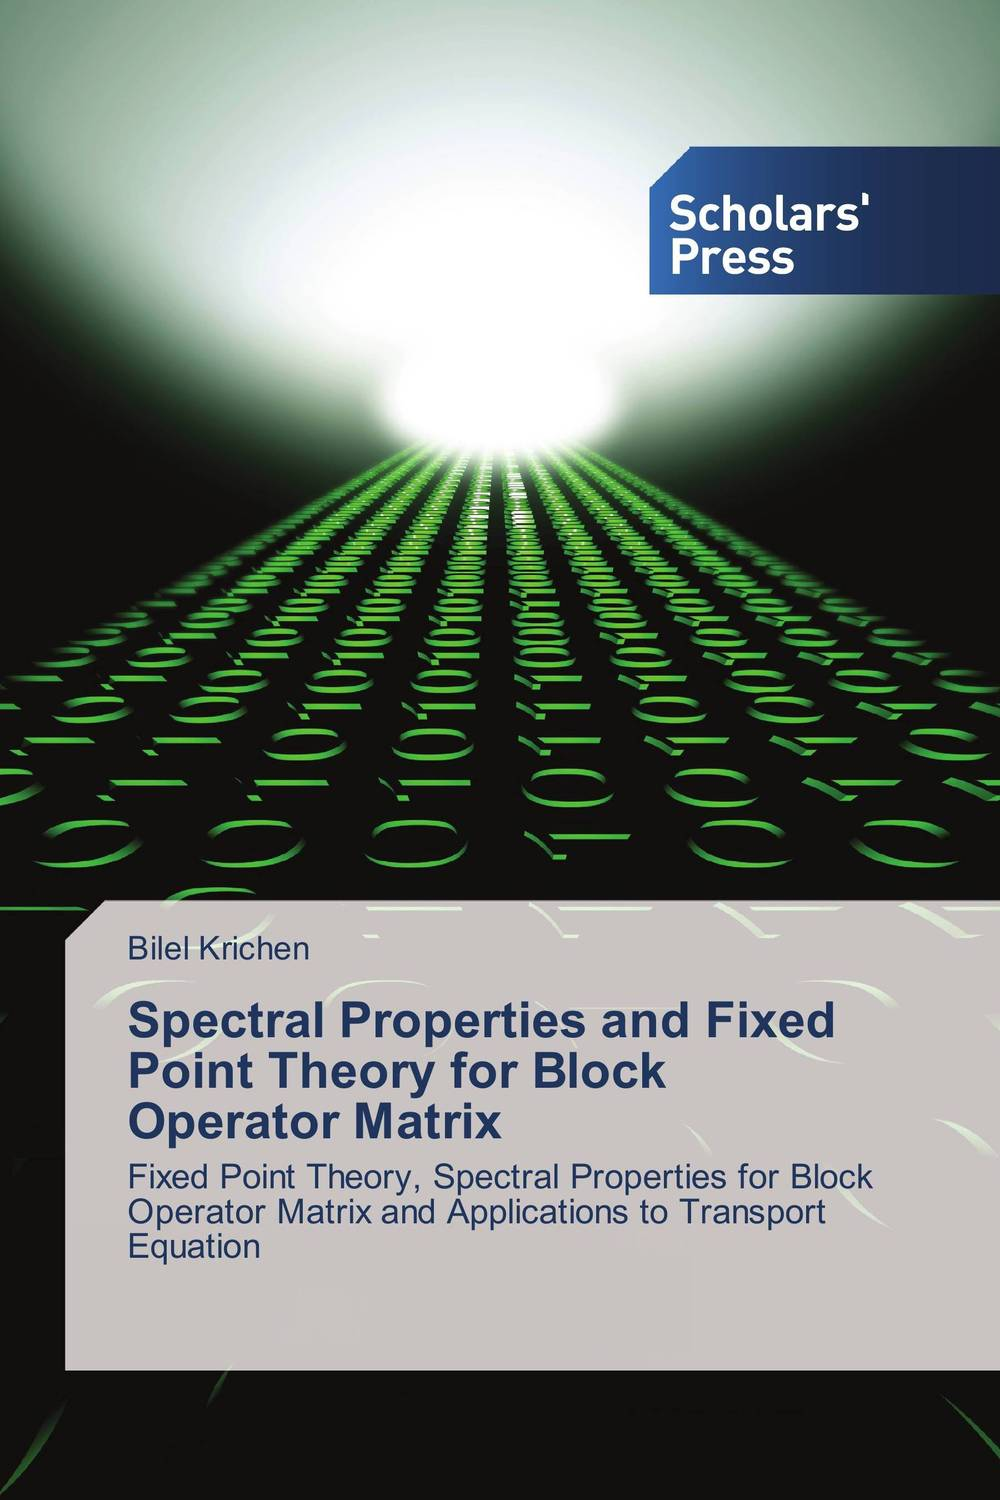 Spectral Properties and Fixed Point Theory for Block Operator Matrix parnas bibliotheca microbiologica brucella phages properties and application